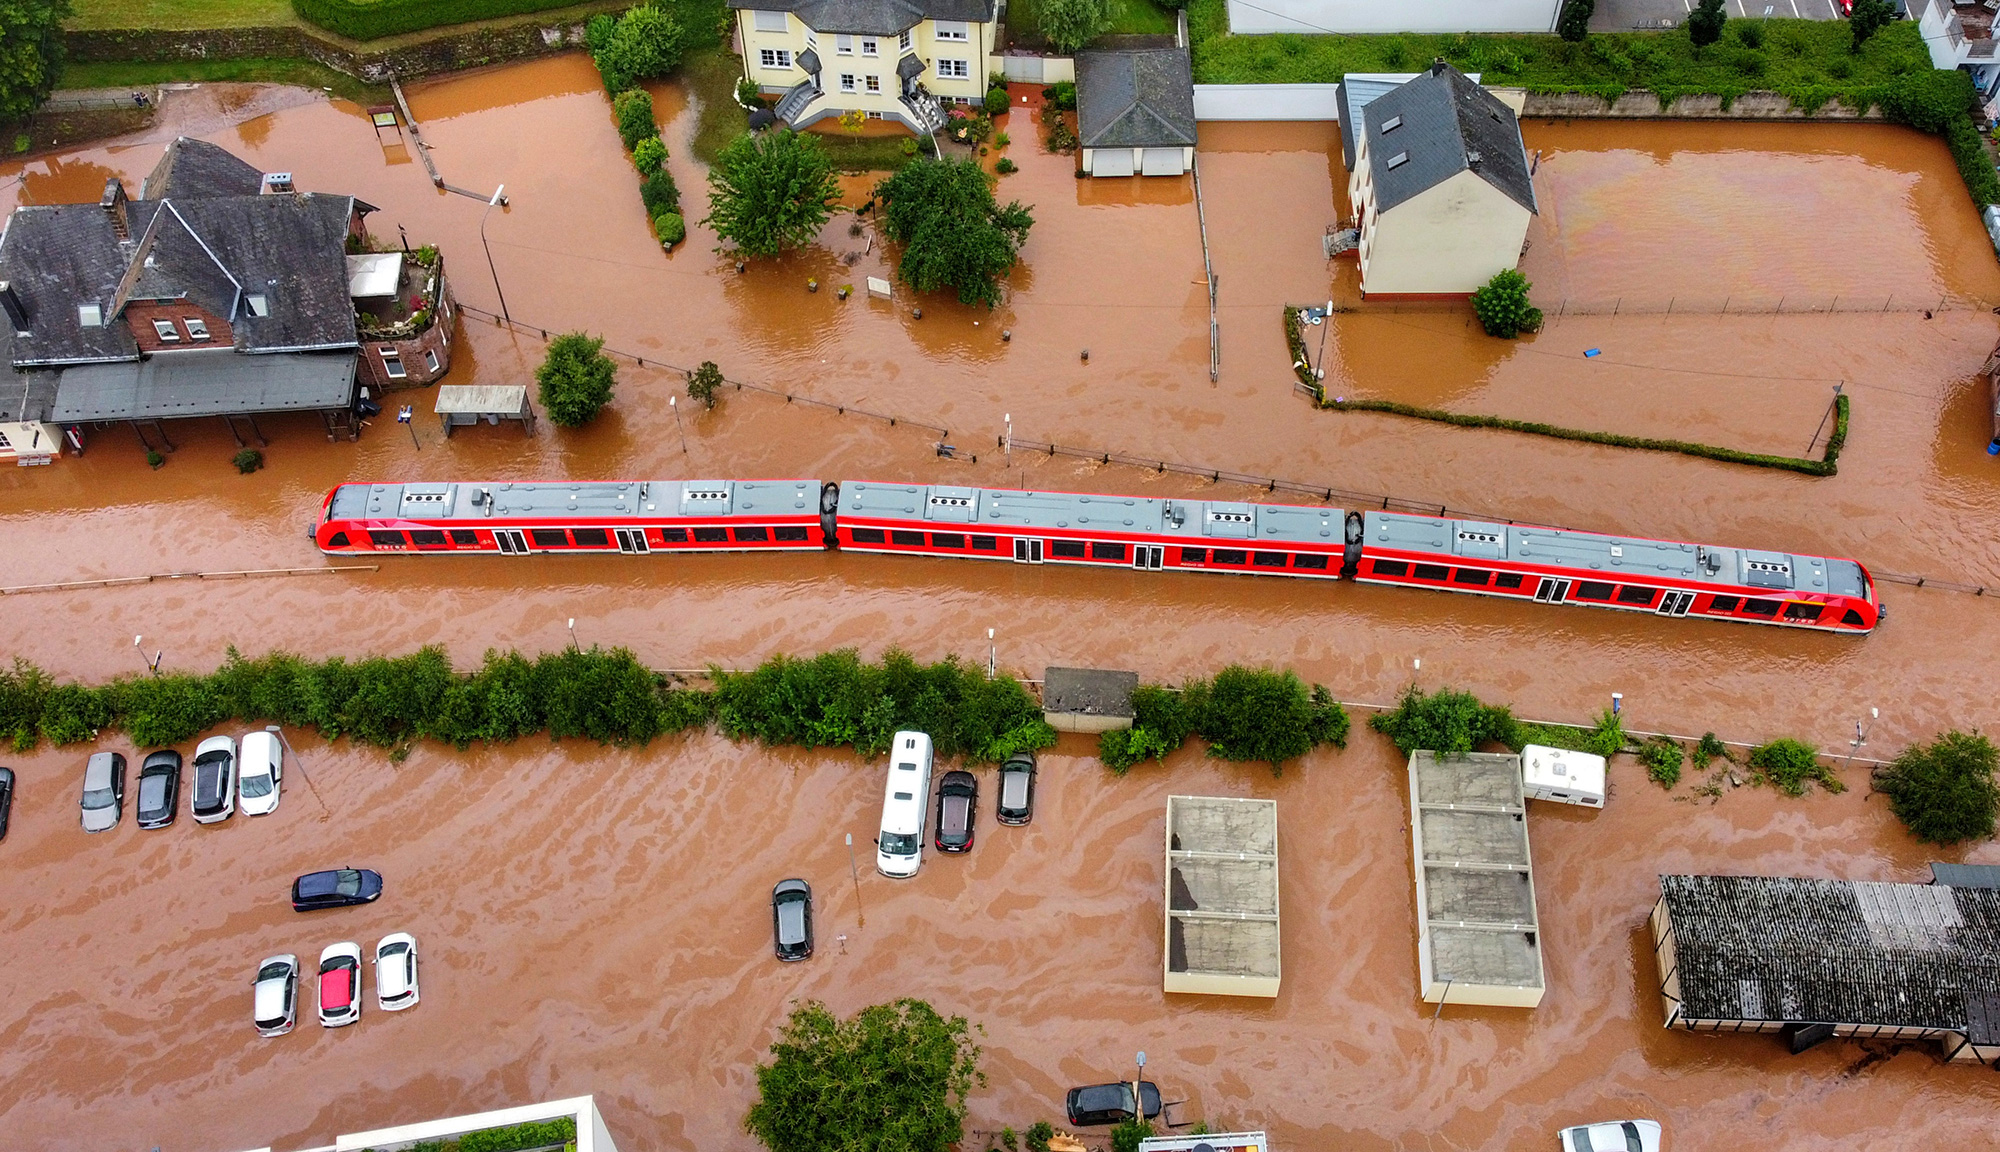 A regional train sits in the flood waters at the local station in Kordel, Germany, on Thursday July 15, after it was flooded by the high waters of the Kyll river.